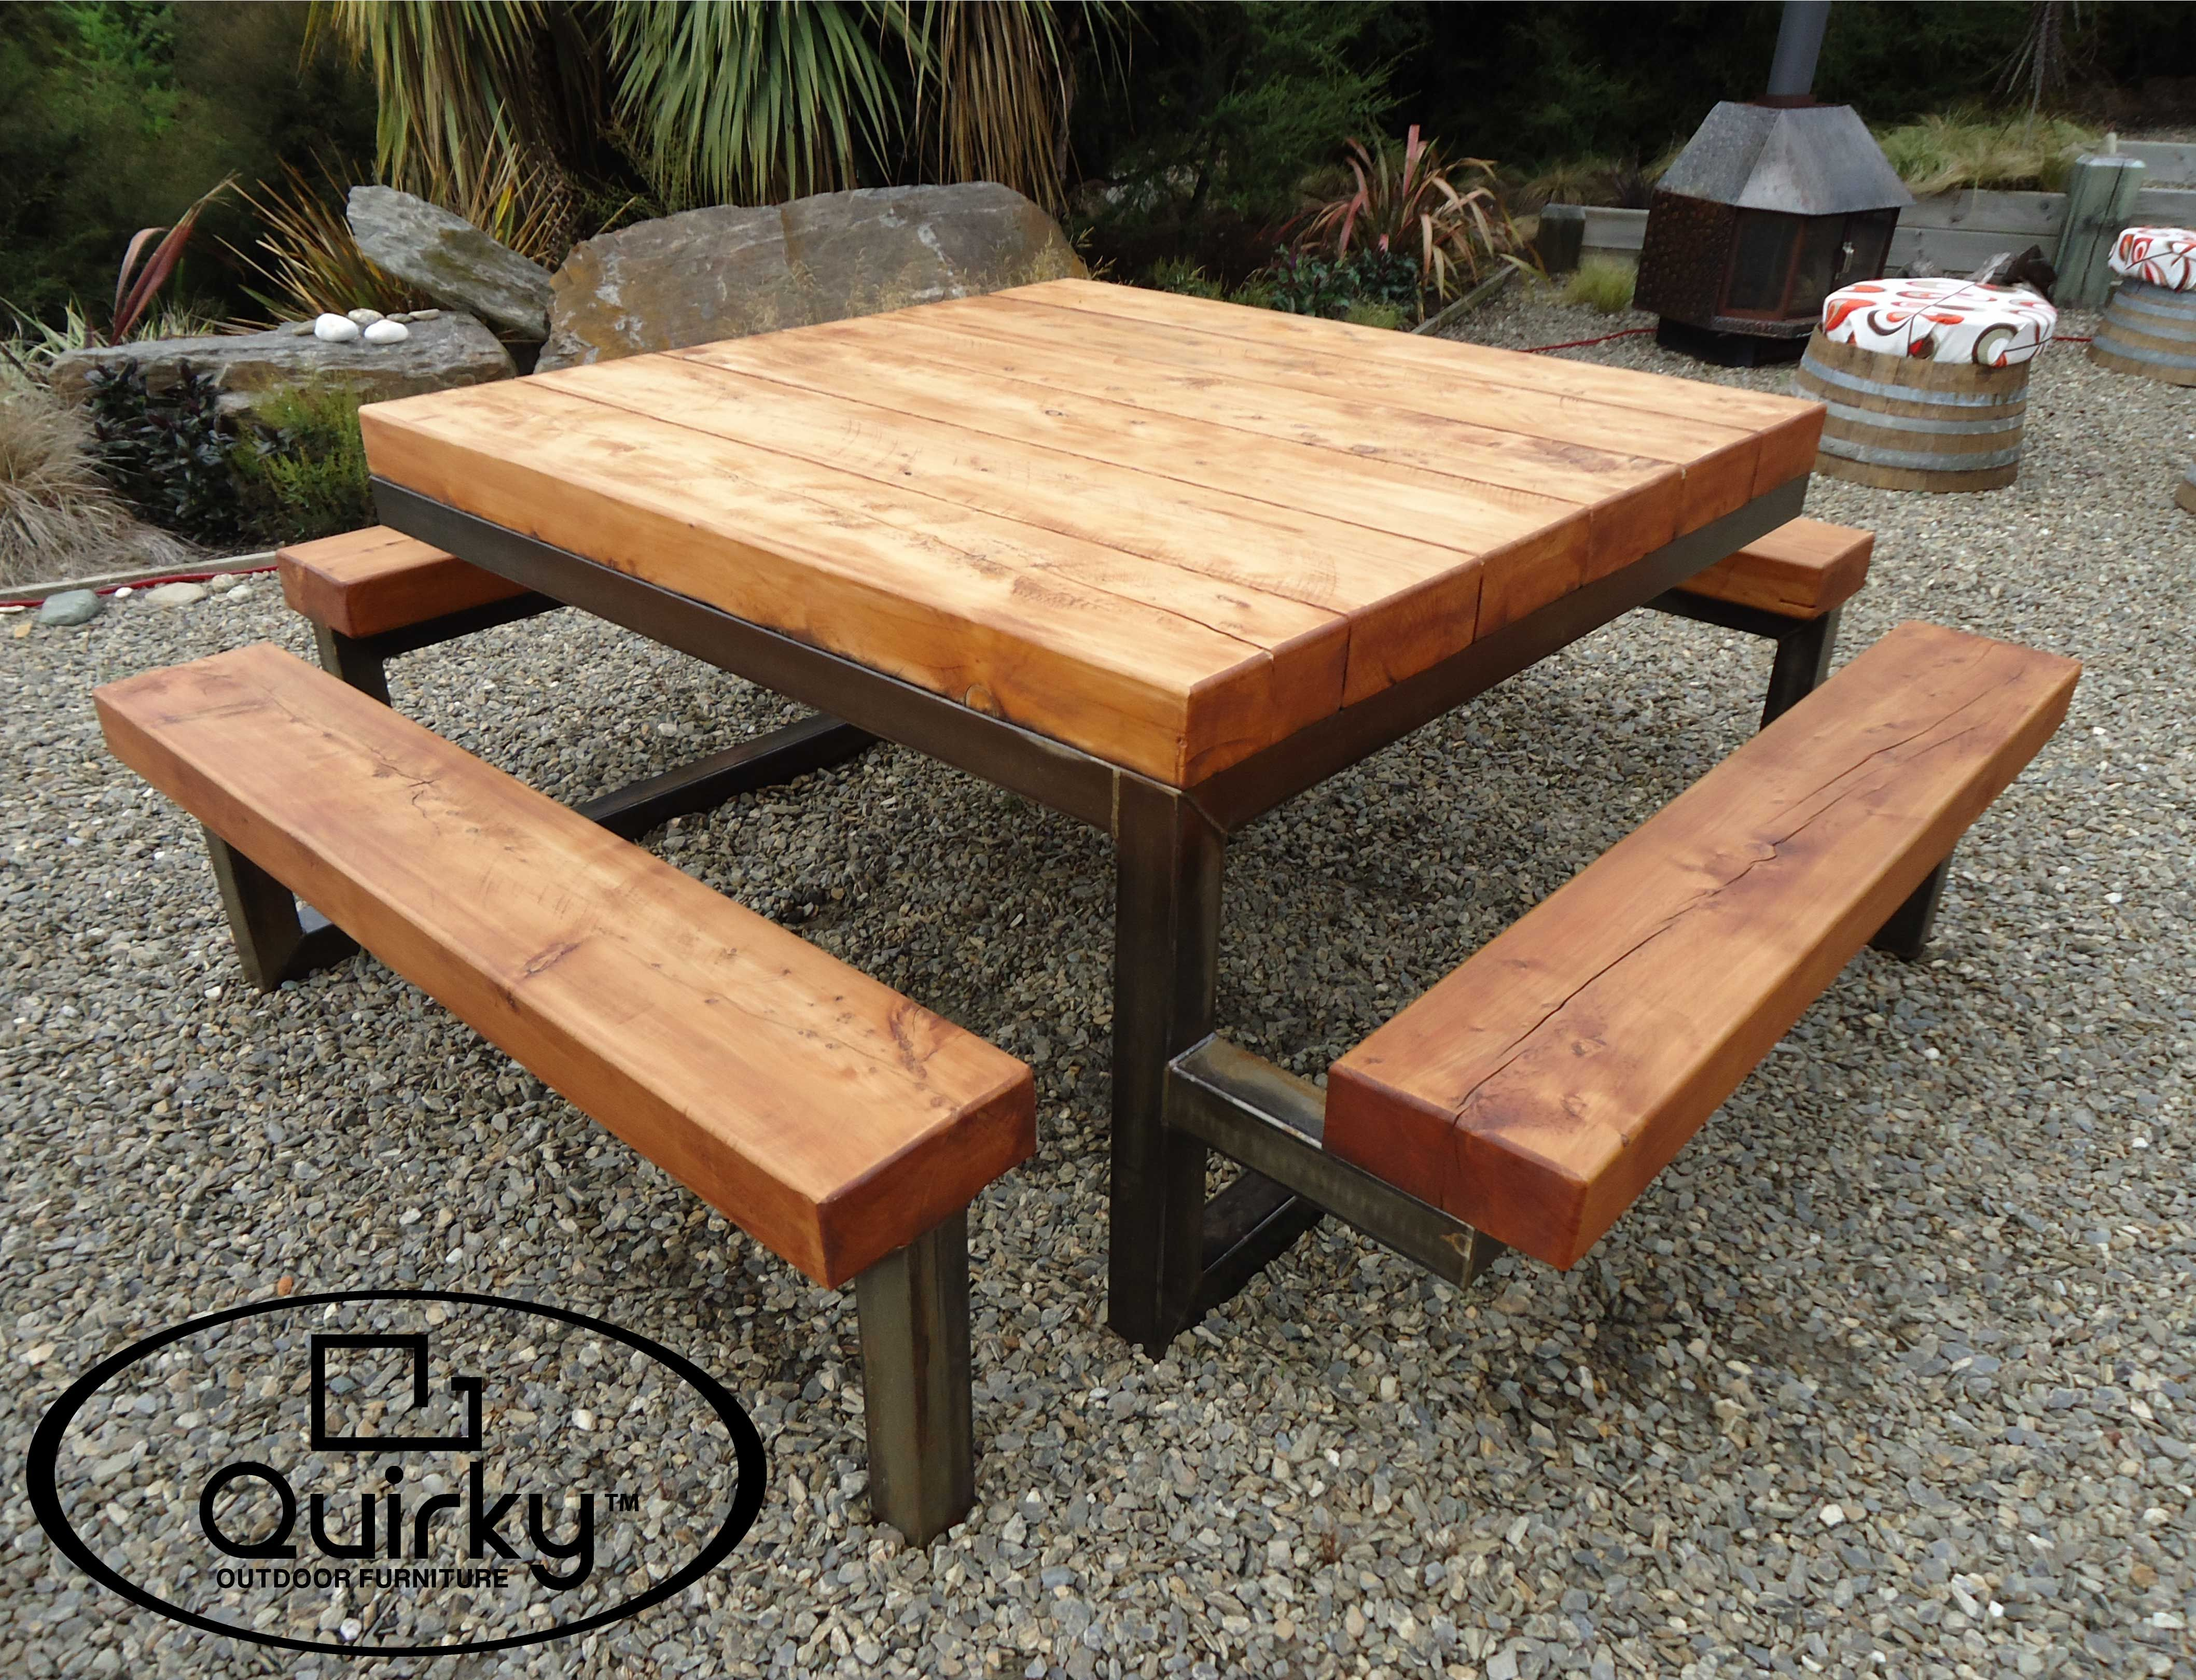 Quirky Outdoor Furniture - Square 1500x1500mm Mild Steel